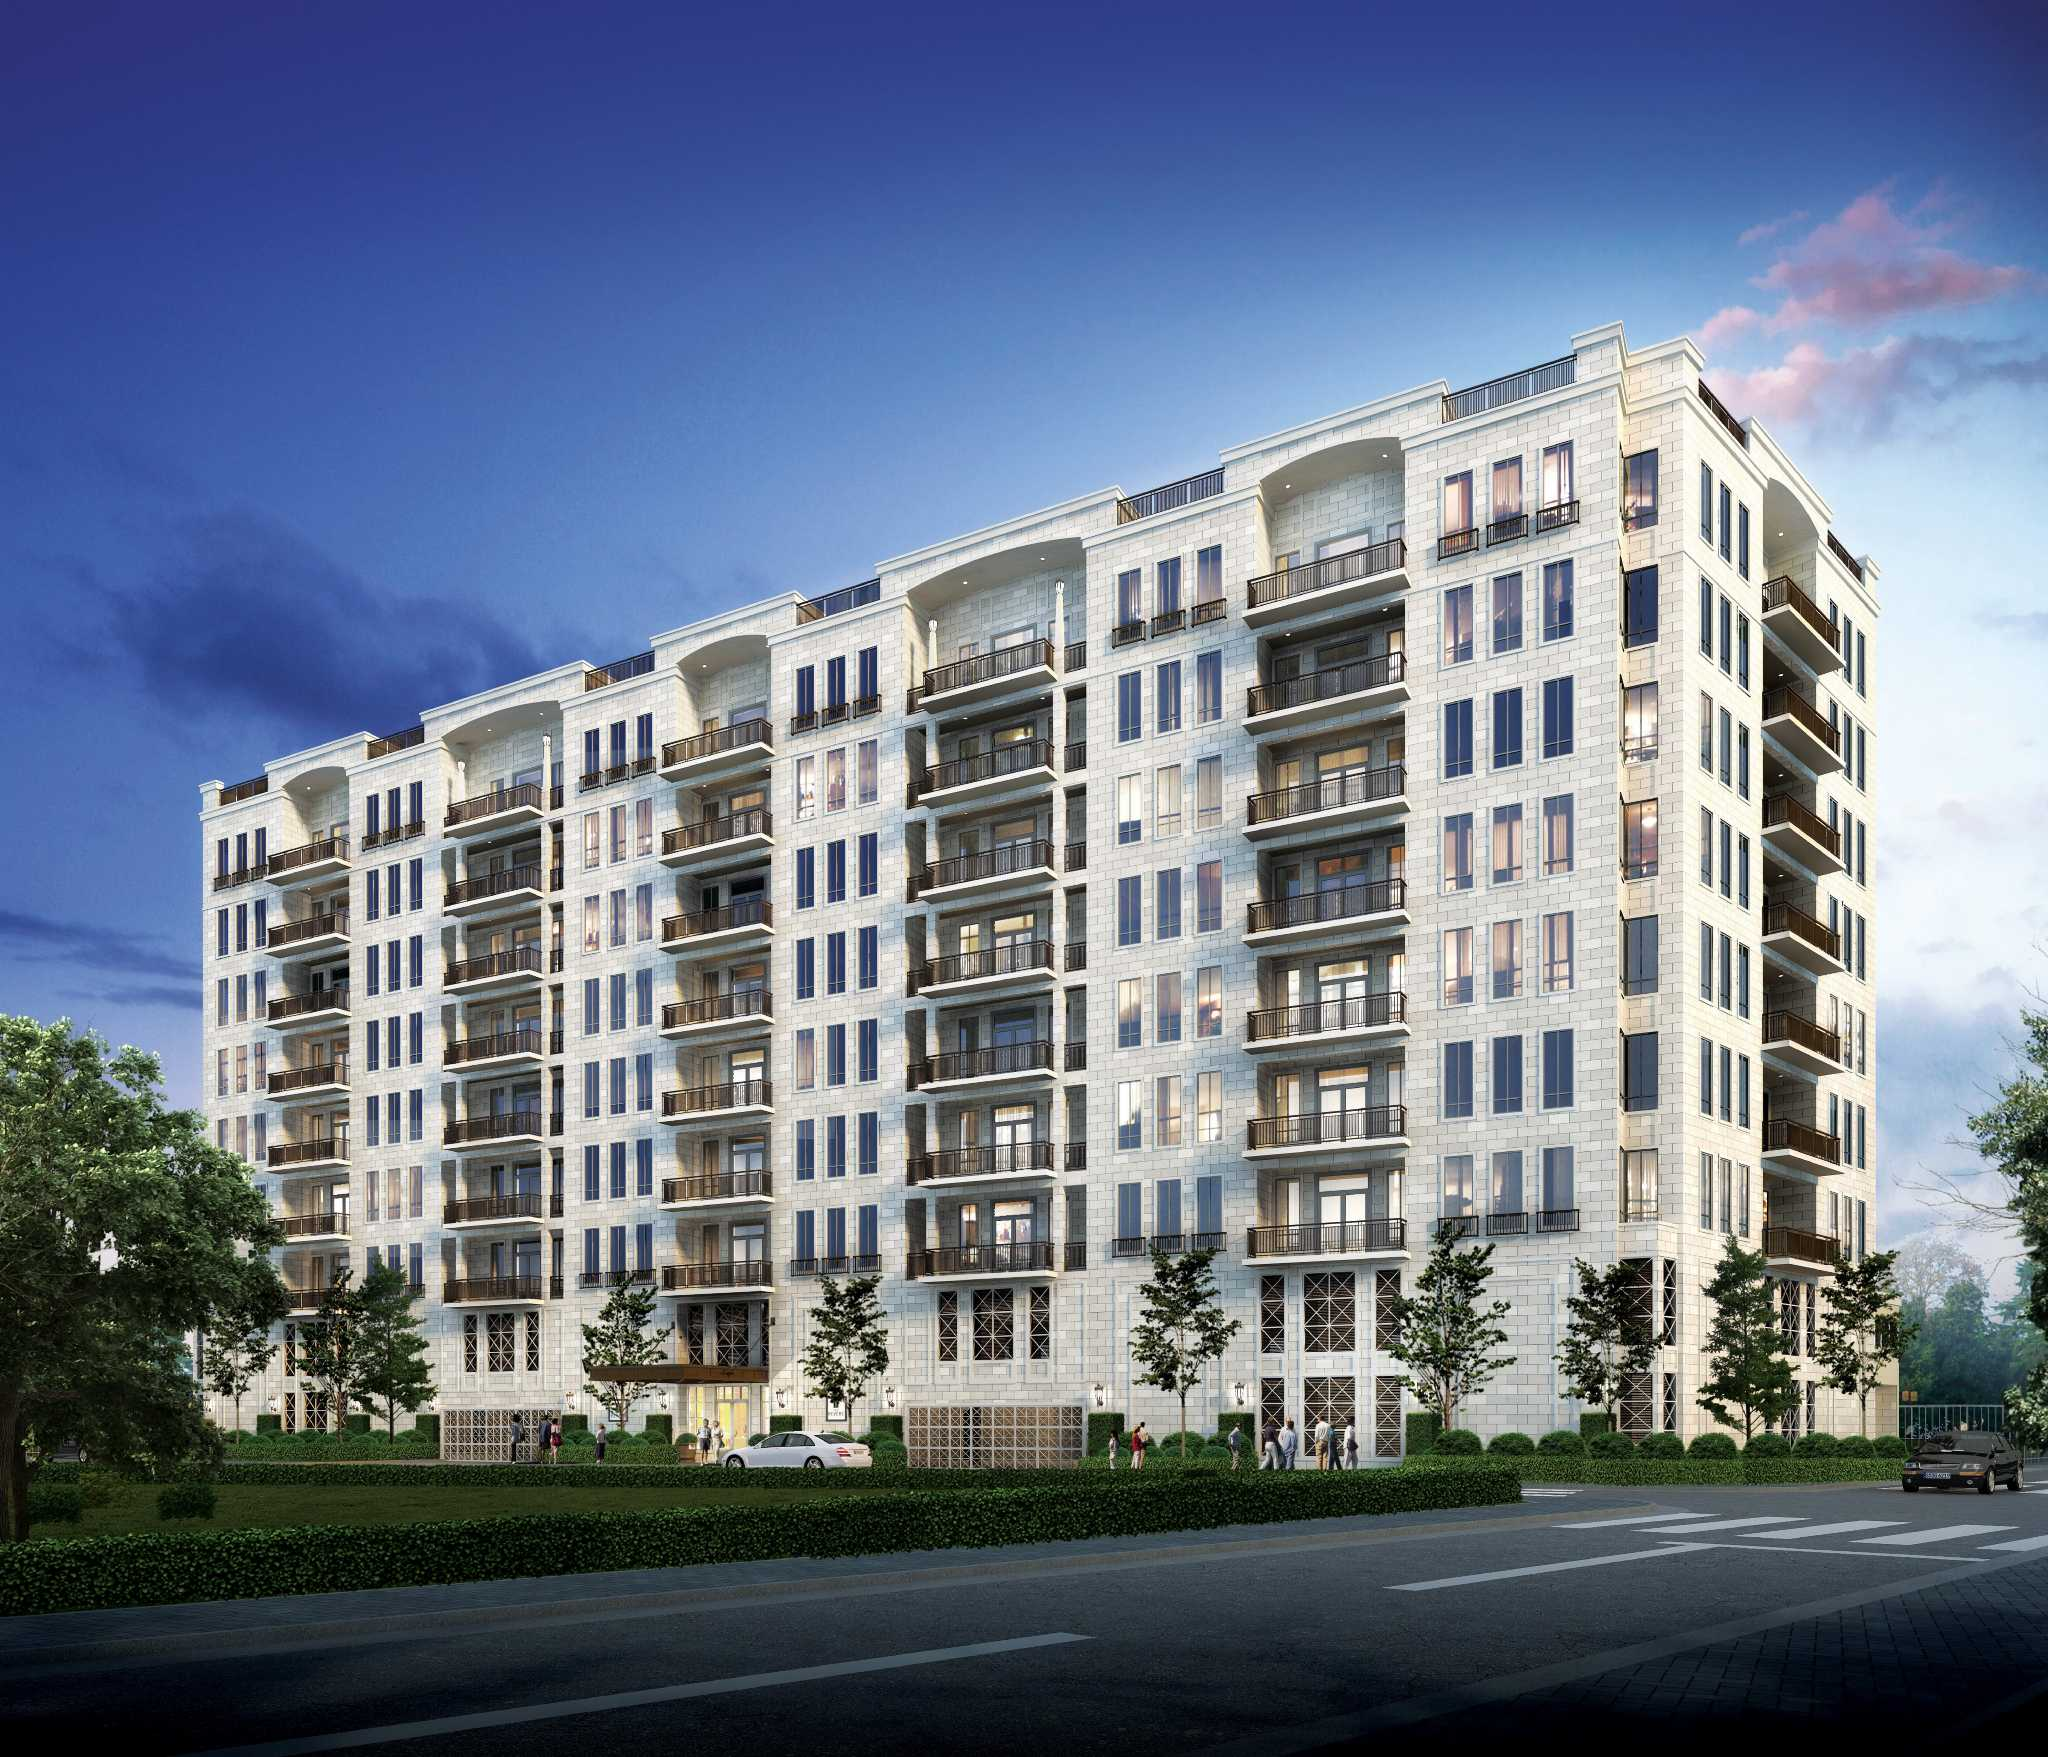 Roswell Luxury New Construction Homes: Pelican Builders Tests Market For New Luxury Condo